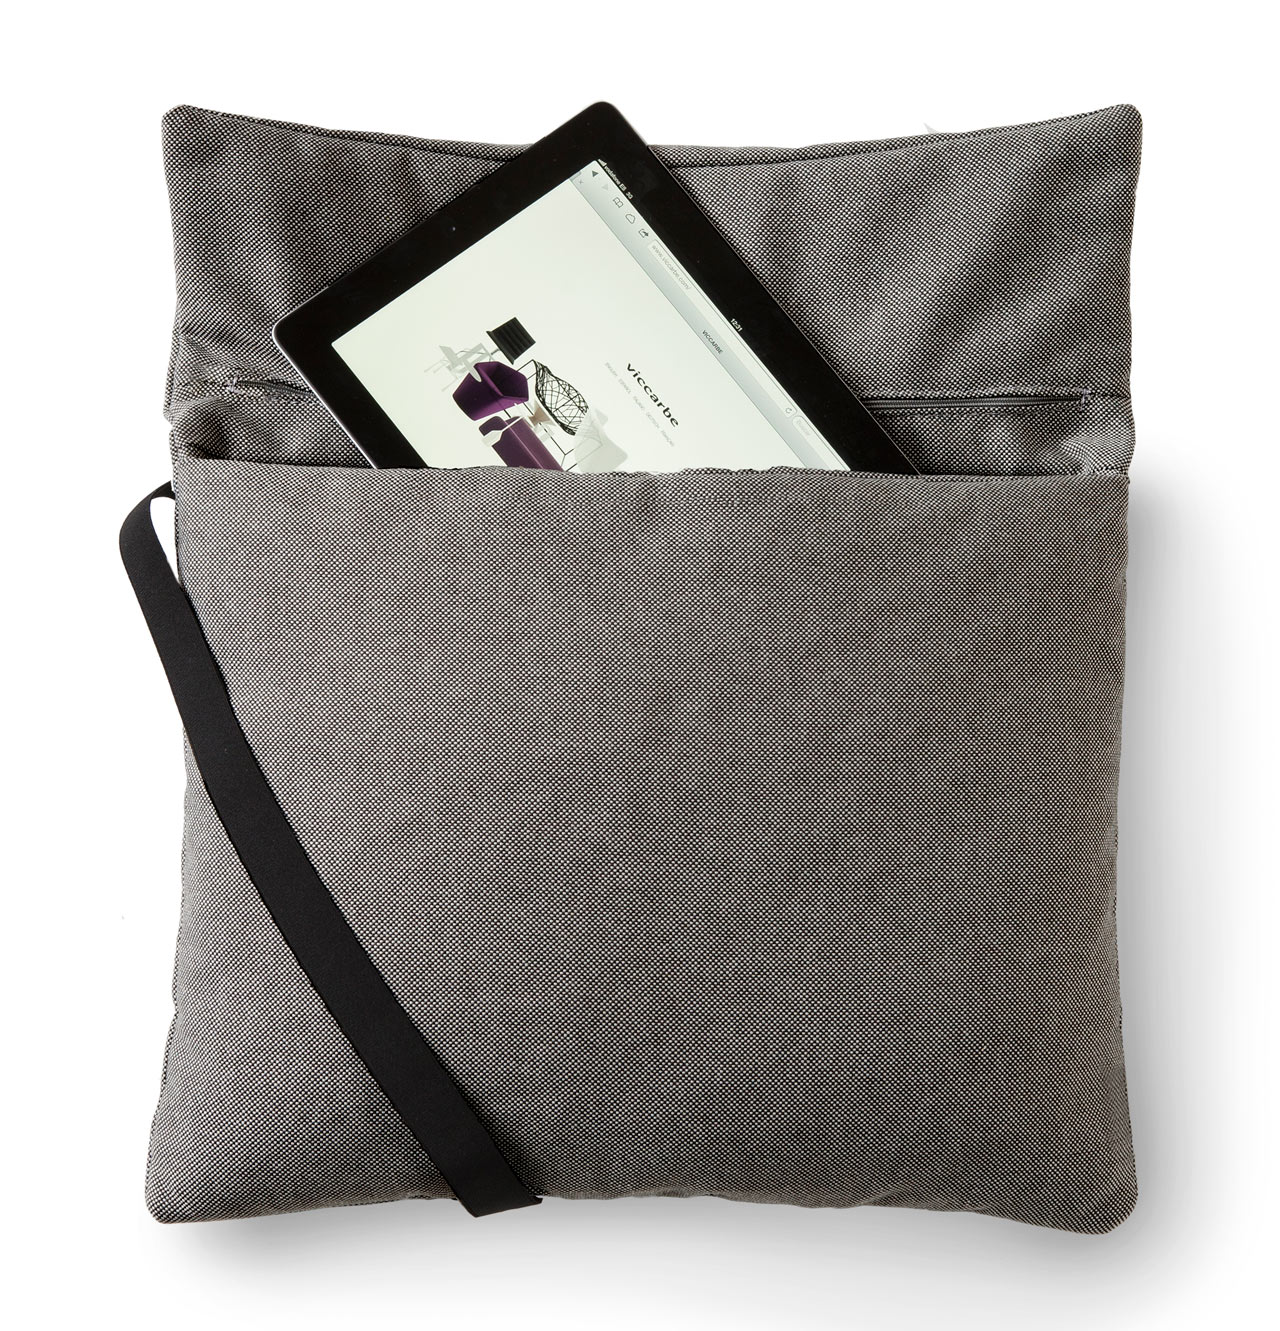 Viccarbe_My-Pillow_Odosdesign-2